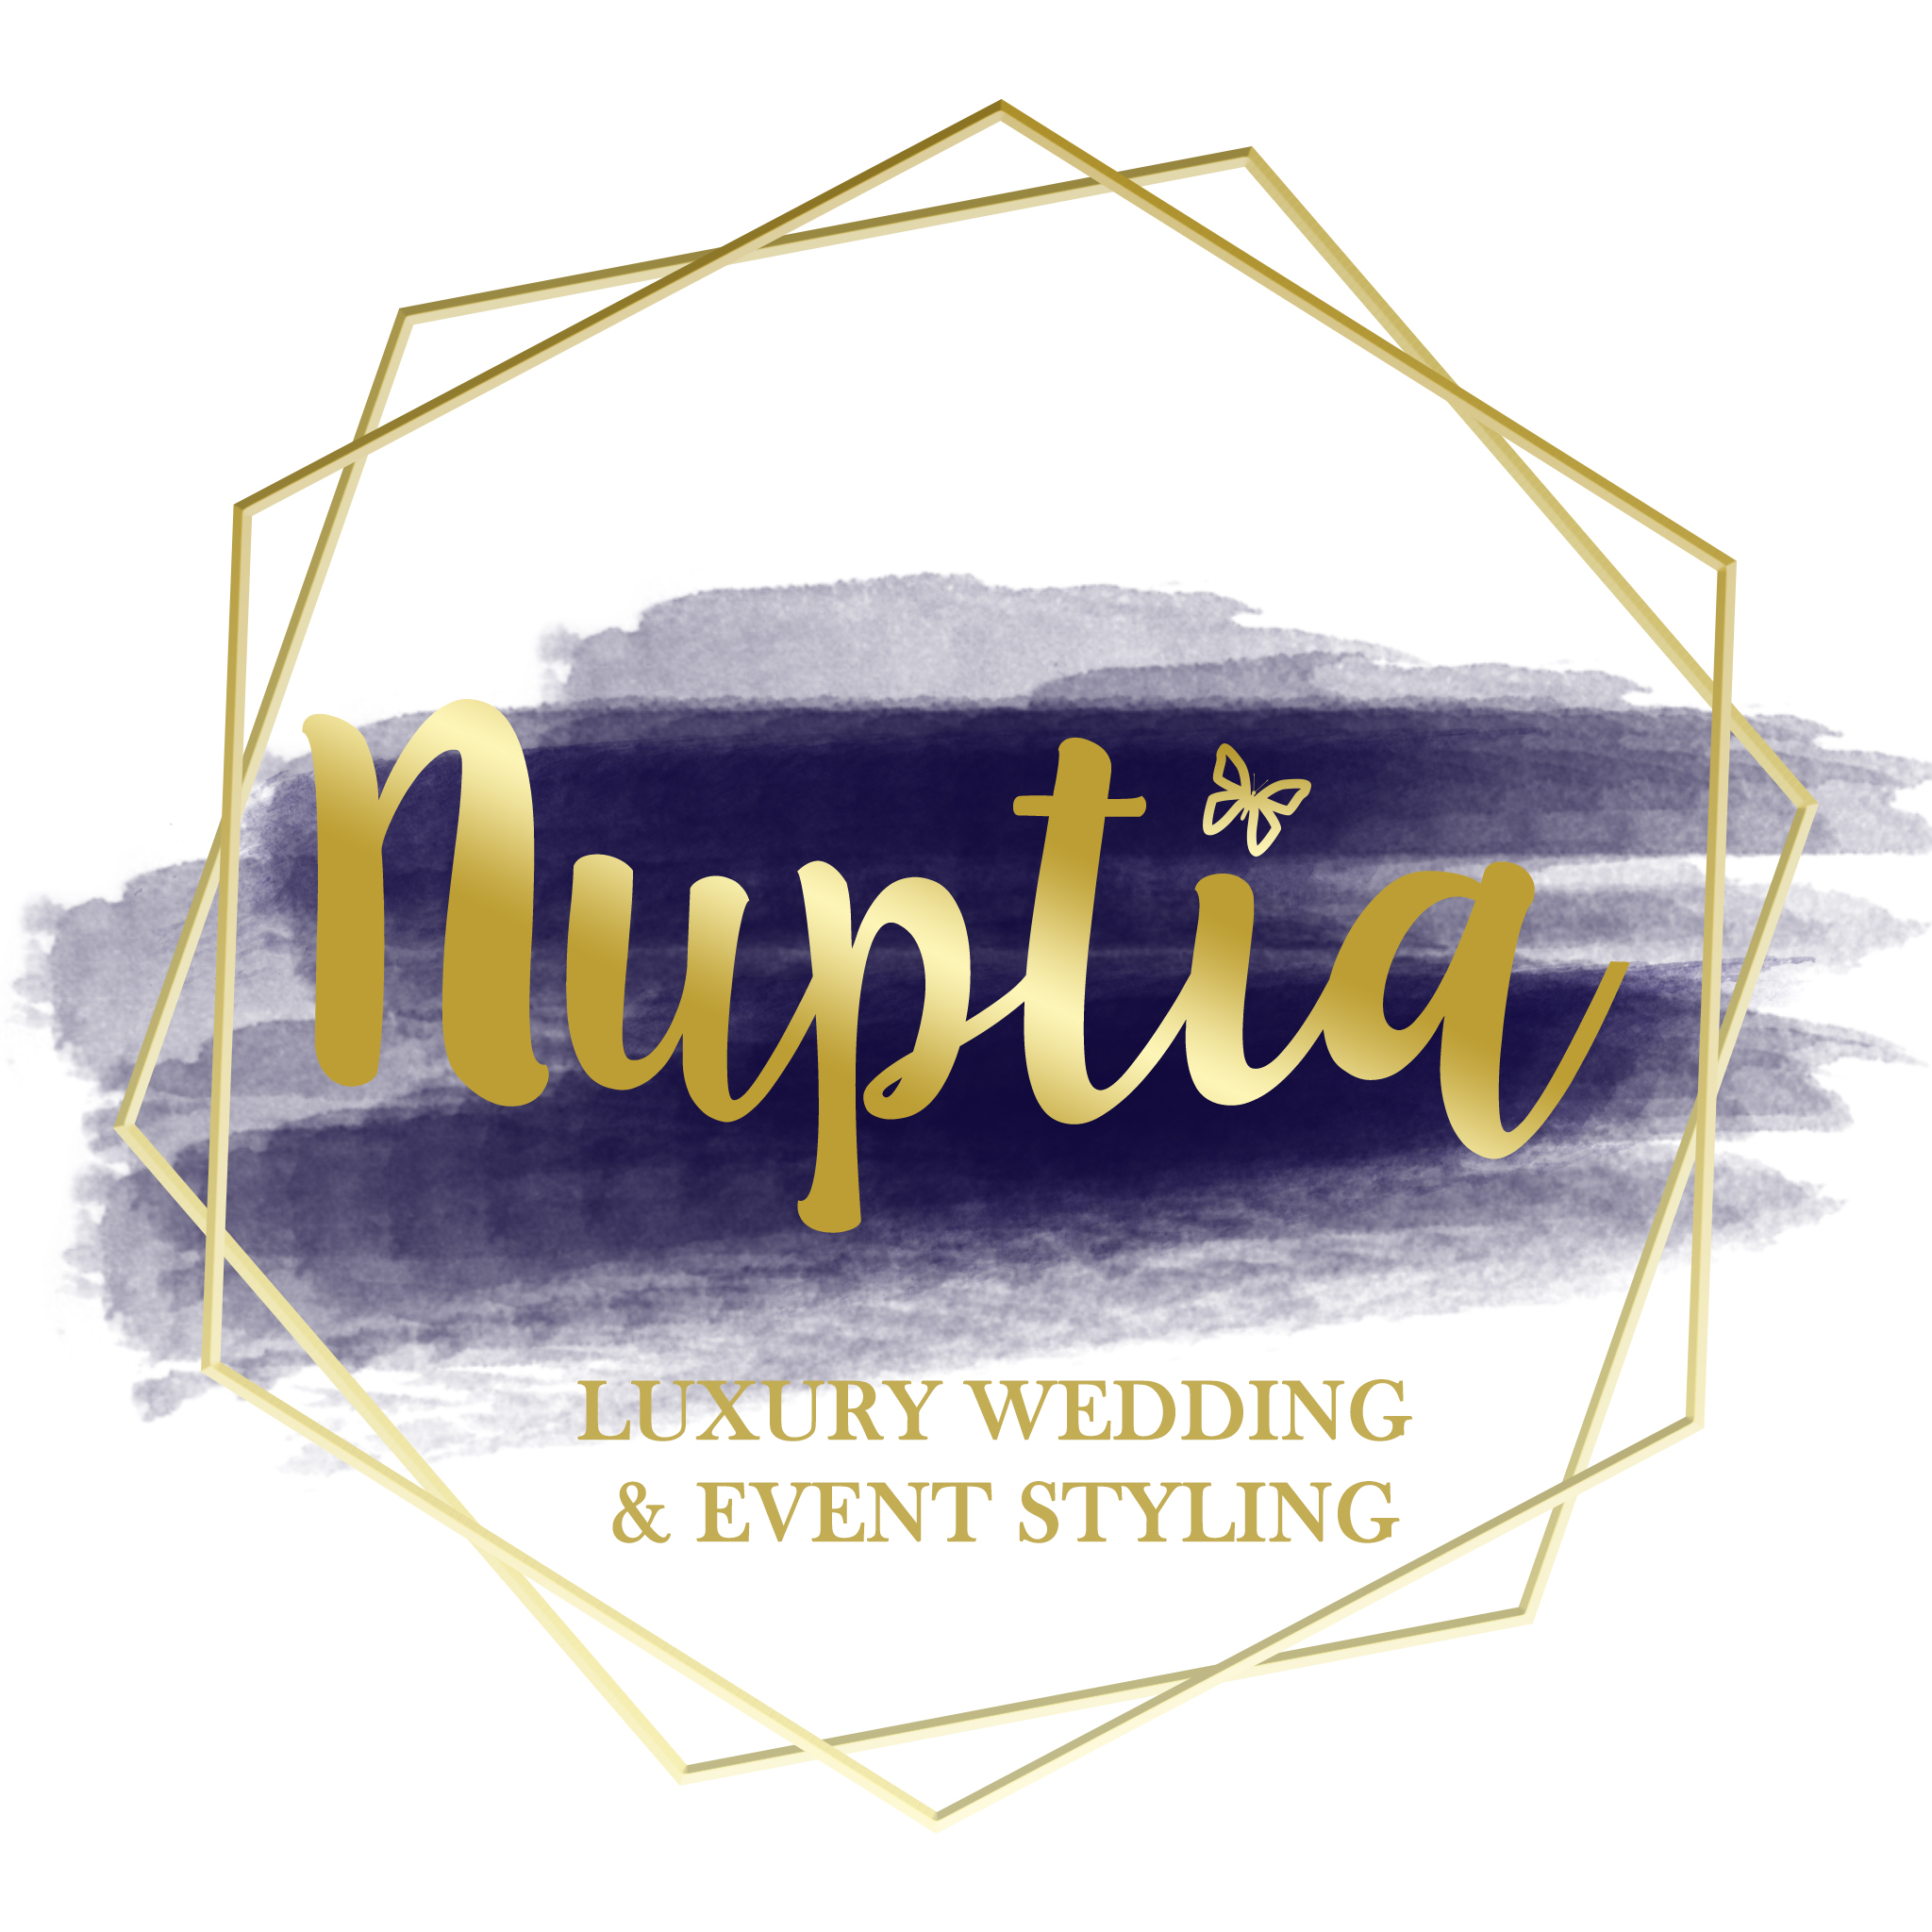 Nuptia Wedding & Events